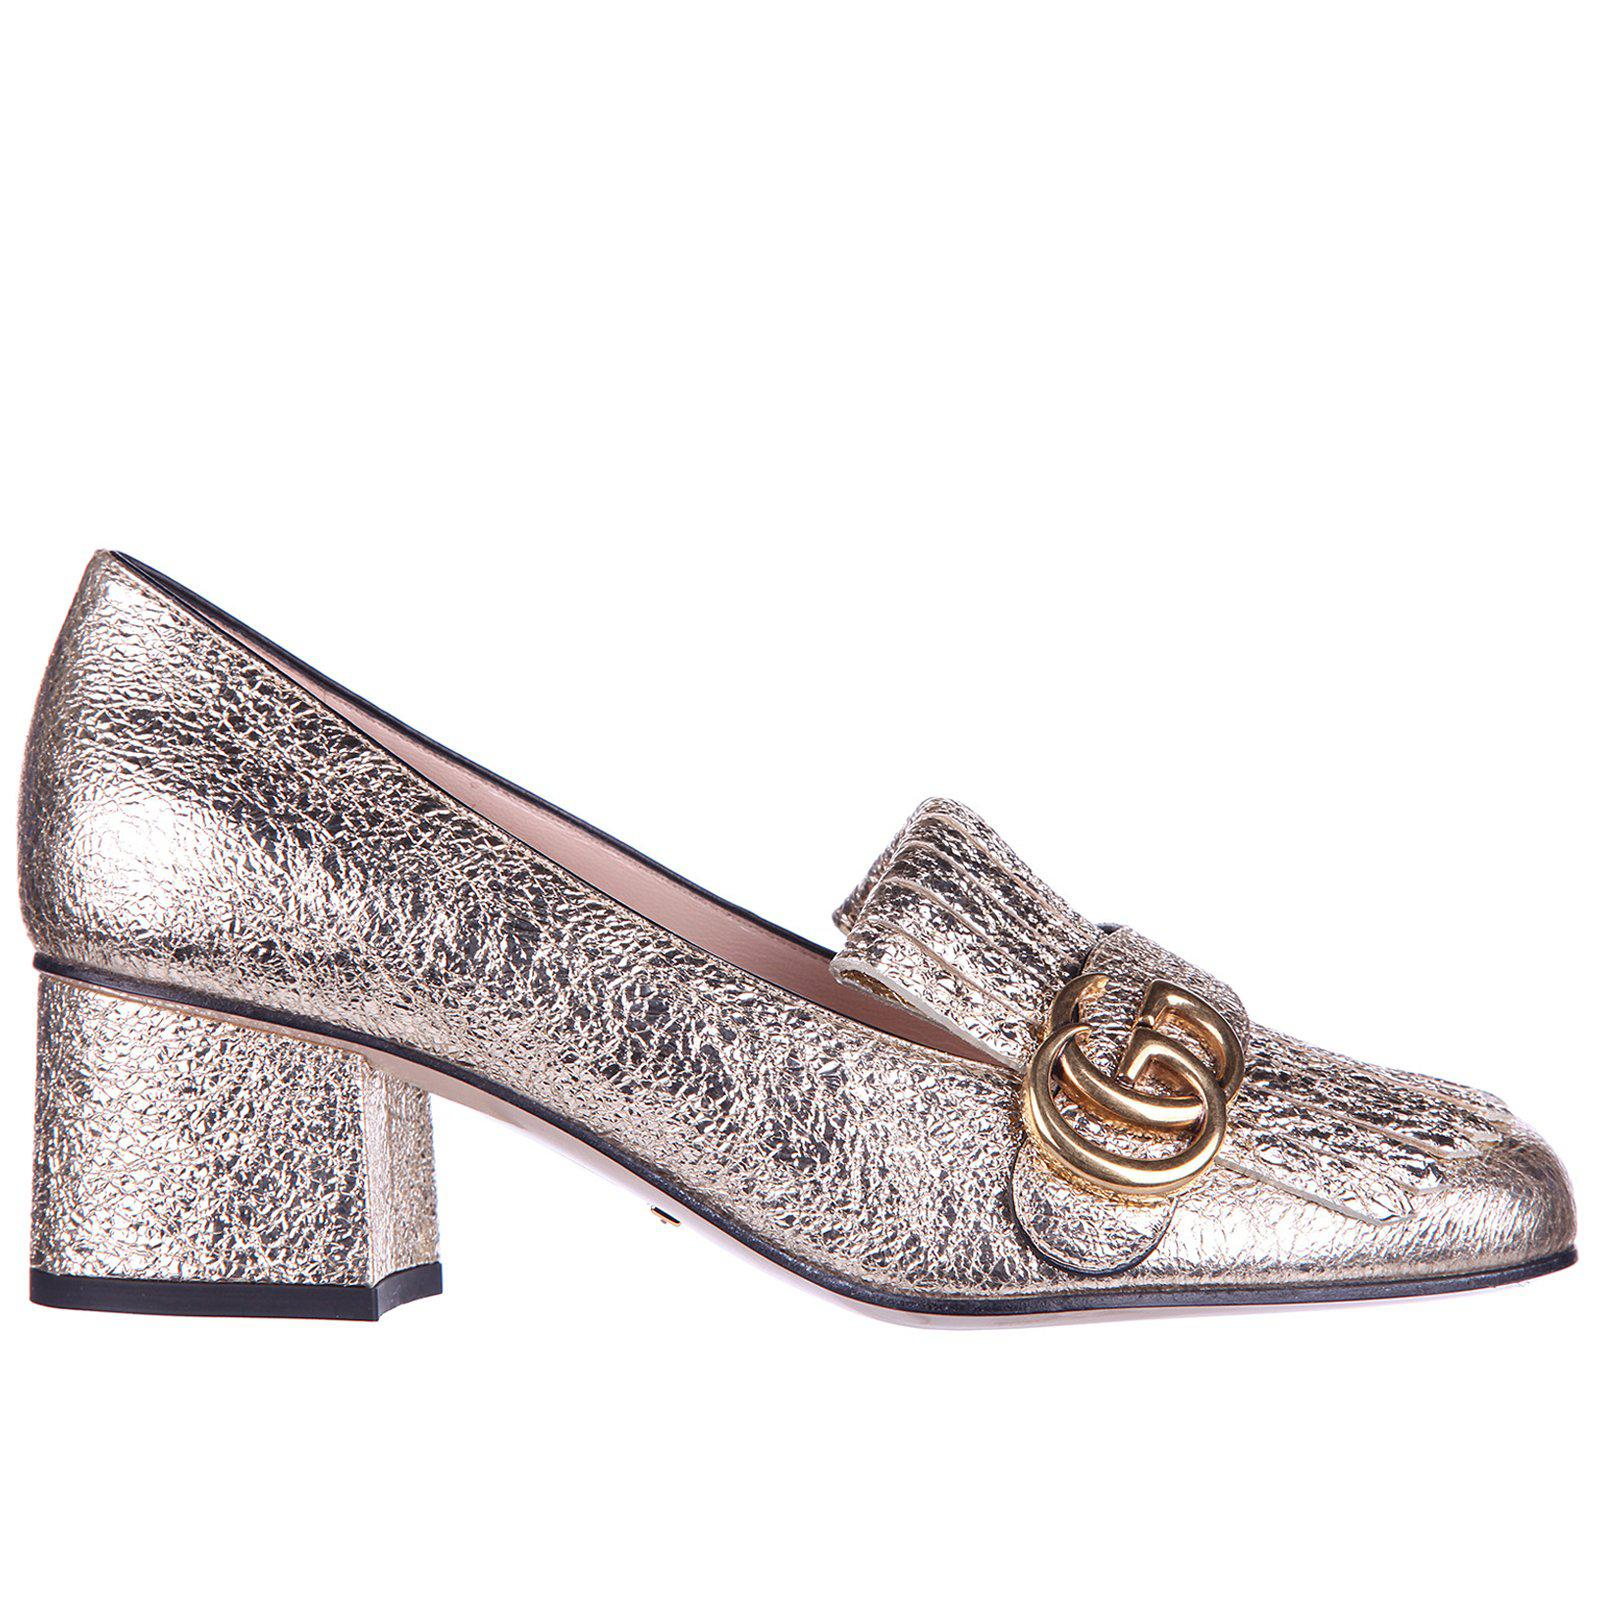 31a6cf31b Lyst - Gucci Marmont Fringe Detailed Pumps in Metallic